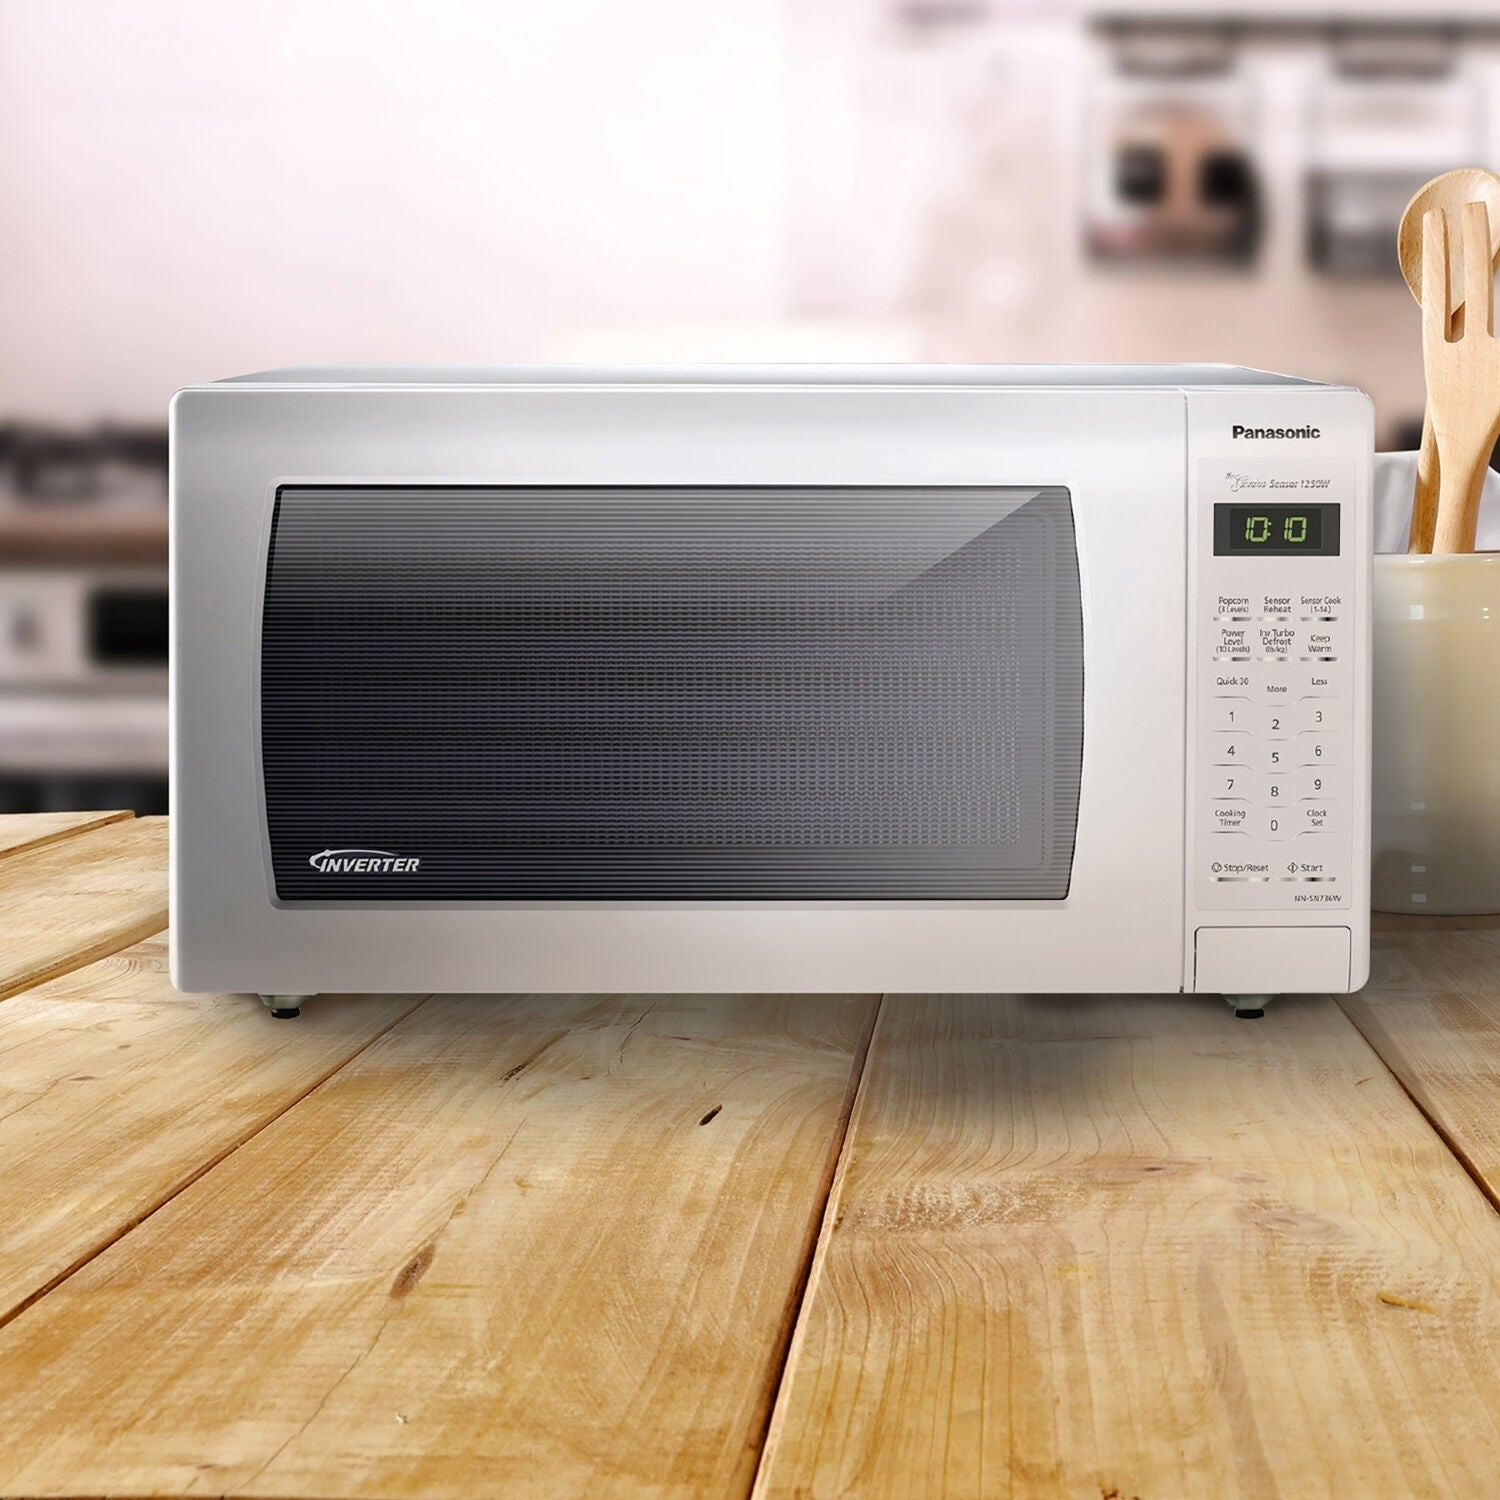 Ft Countertop Microwave Oven with Inverter Panasonic NN-SN736W White 1.6 Cu